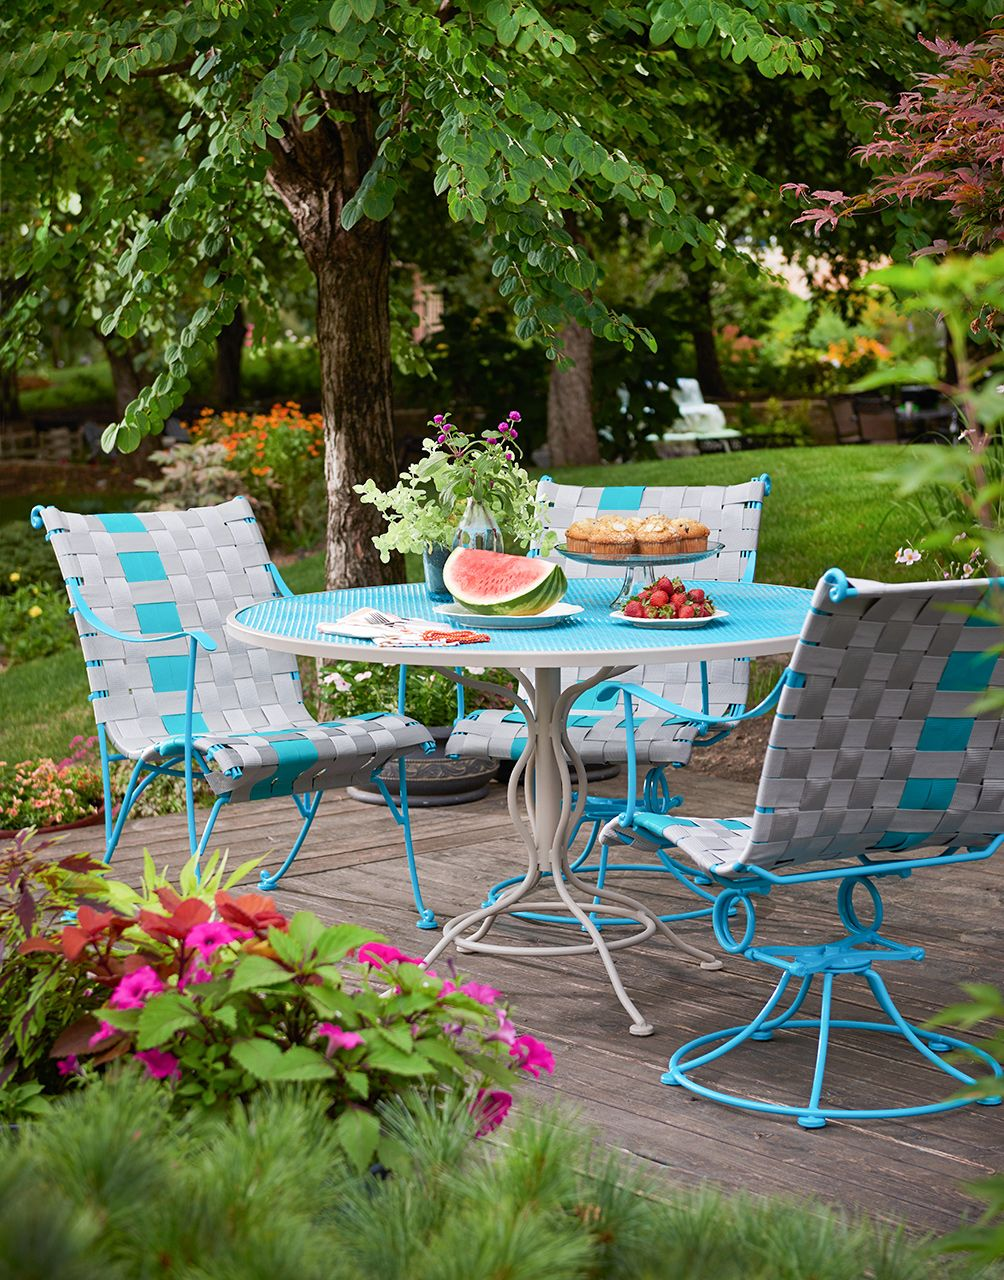 24 Budget Friendly Backyard Ideas To Create The Ultimate Outdoor Getaway In 2020 Patio Set Patio Metal Patio Furniture